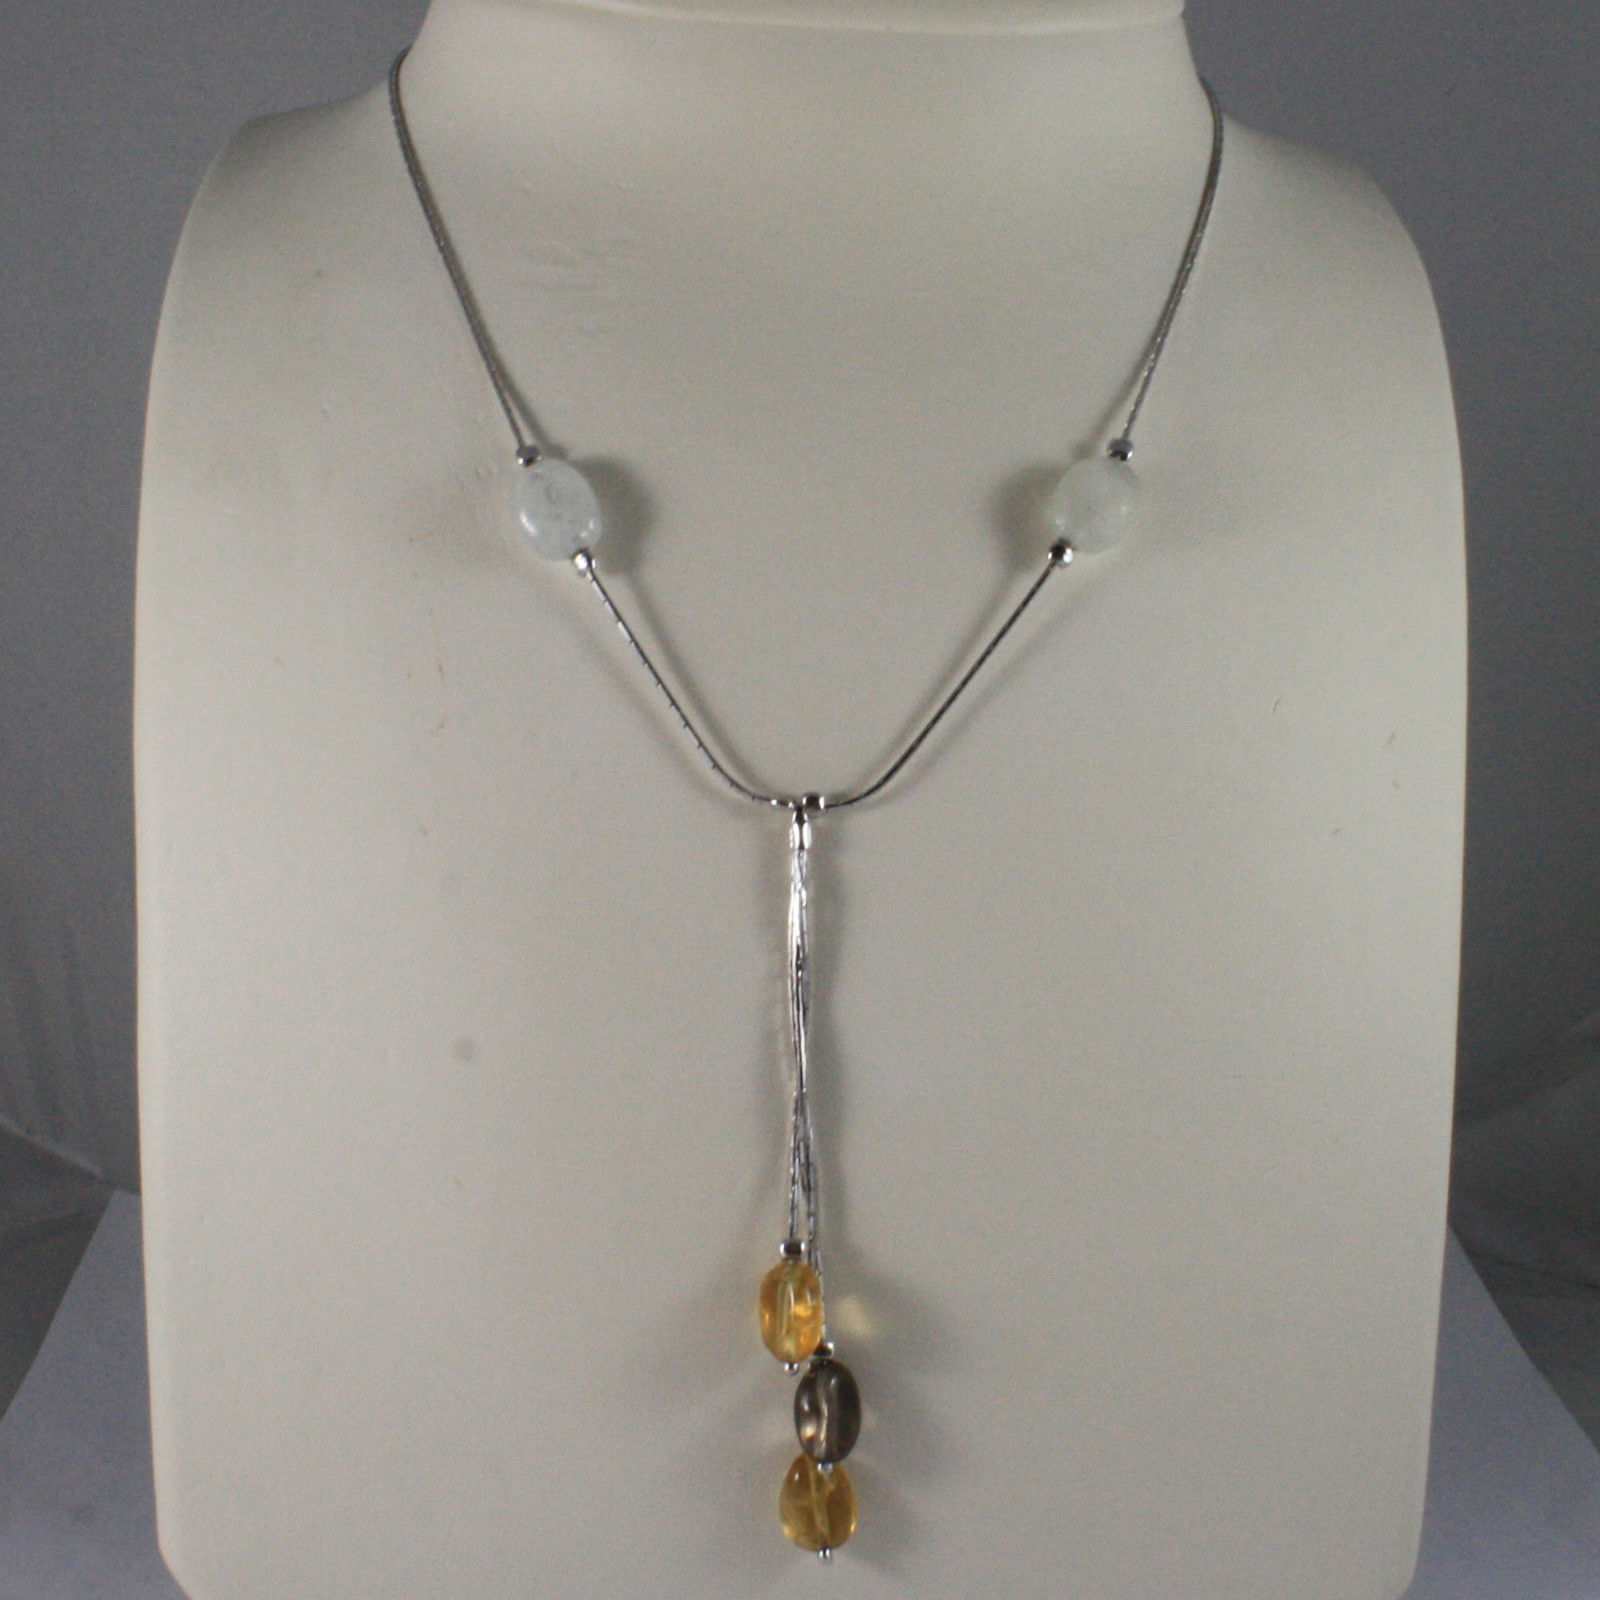 .925 SILVER RHODIUM NECKLACE WITH SMOKY, LEMON AND WHITE QUARTZ